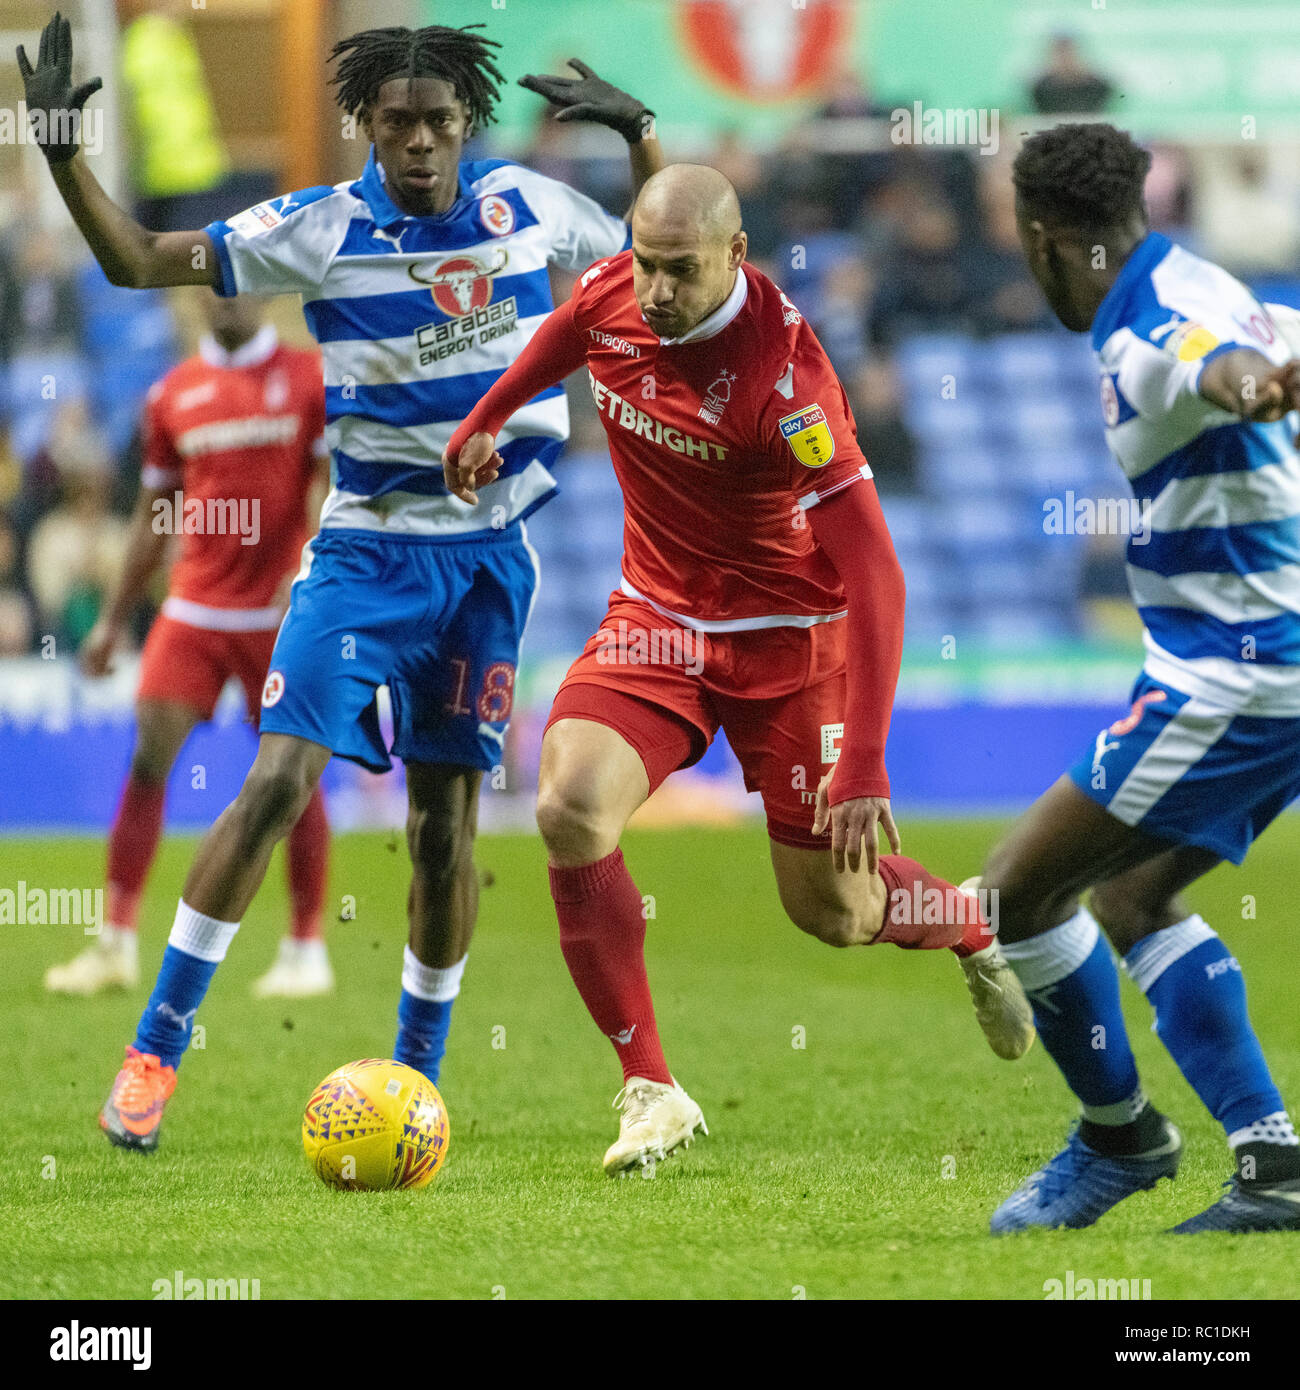 Madjeski Stadium, Reading, UK. 12th January 2019. Football match between Reading and Forest on 12-01-19 at Madjeski Stadium; Reading win 2-0, Forest two players sent off. - Stock Image